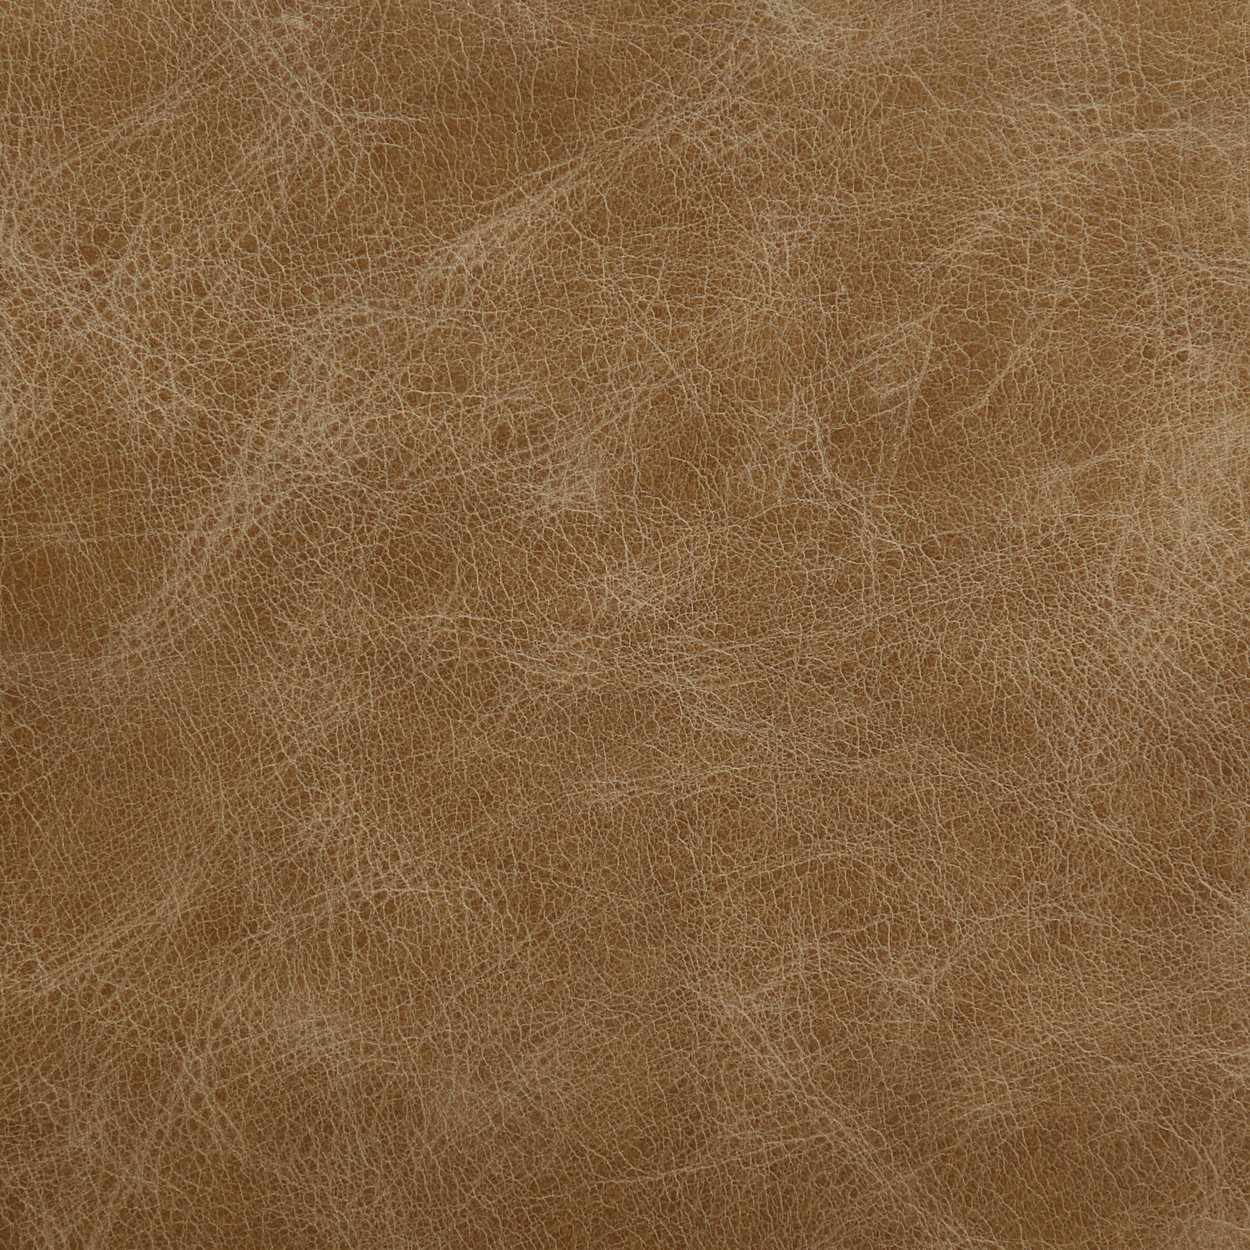 Terra - Leather Distressed